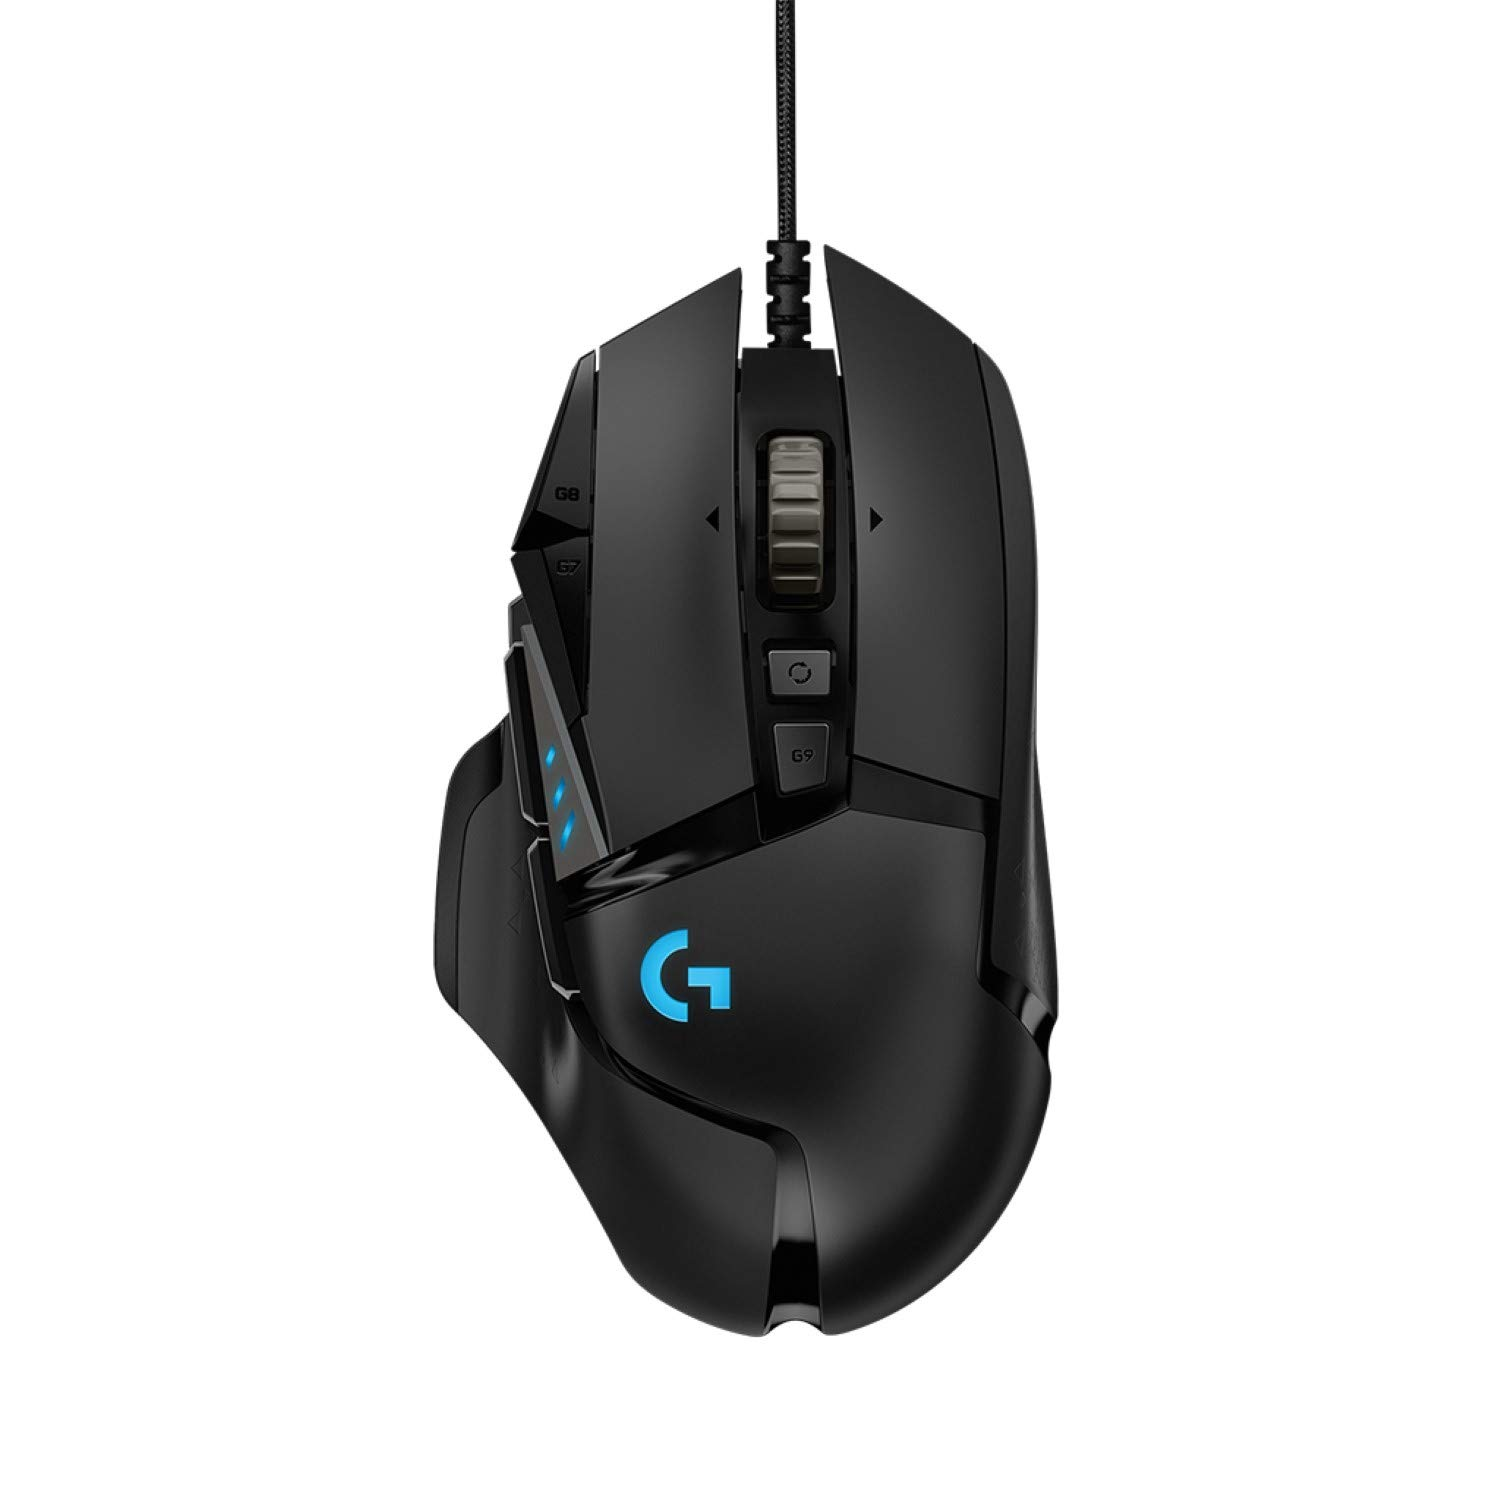 Logitech G502 HERO High Performance Gaming Mouse by Logitech G